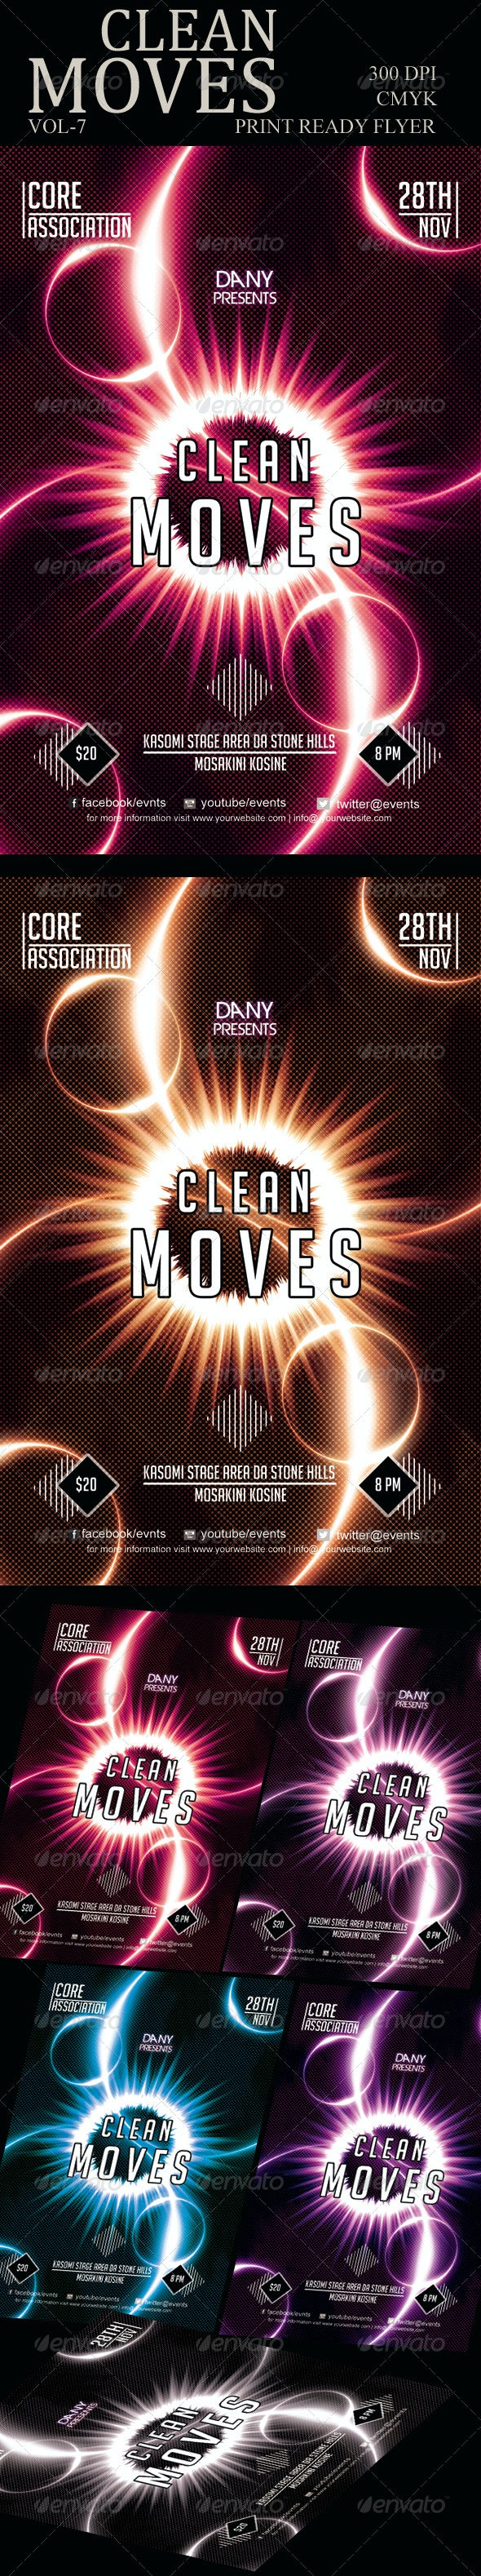 Clean Moves Flyer 7 - Clubs & Parties Events